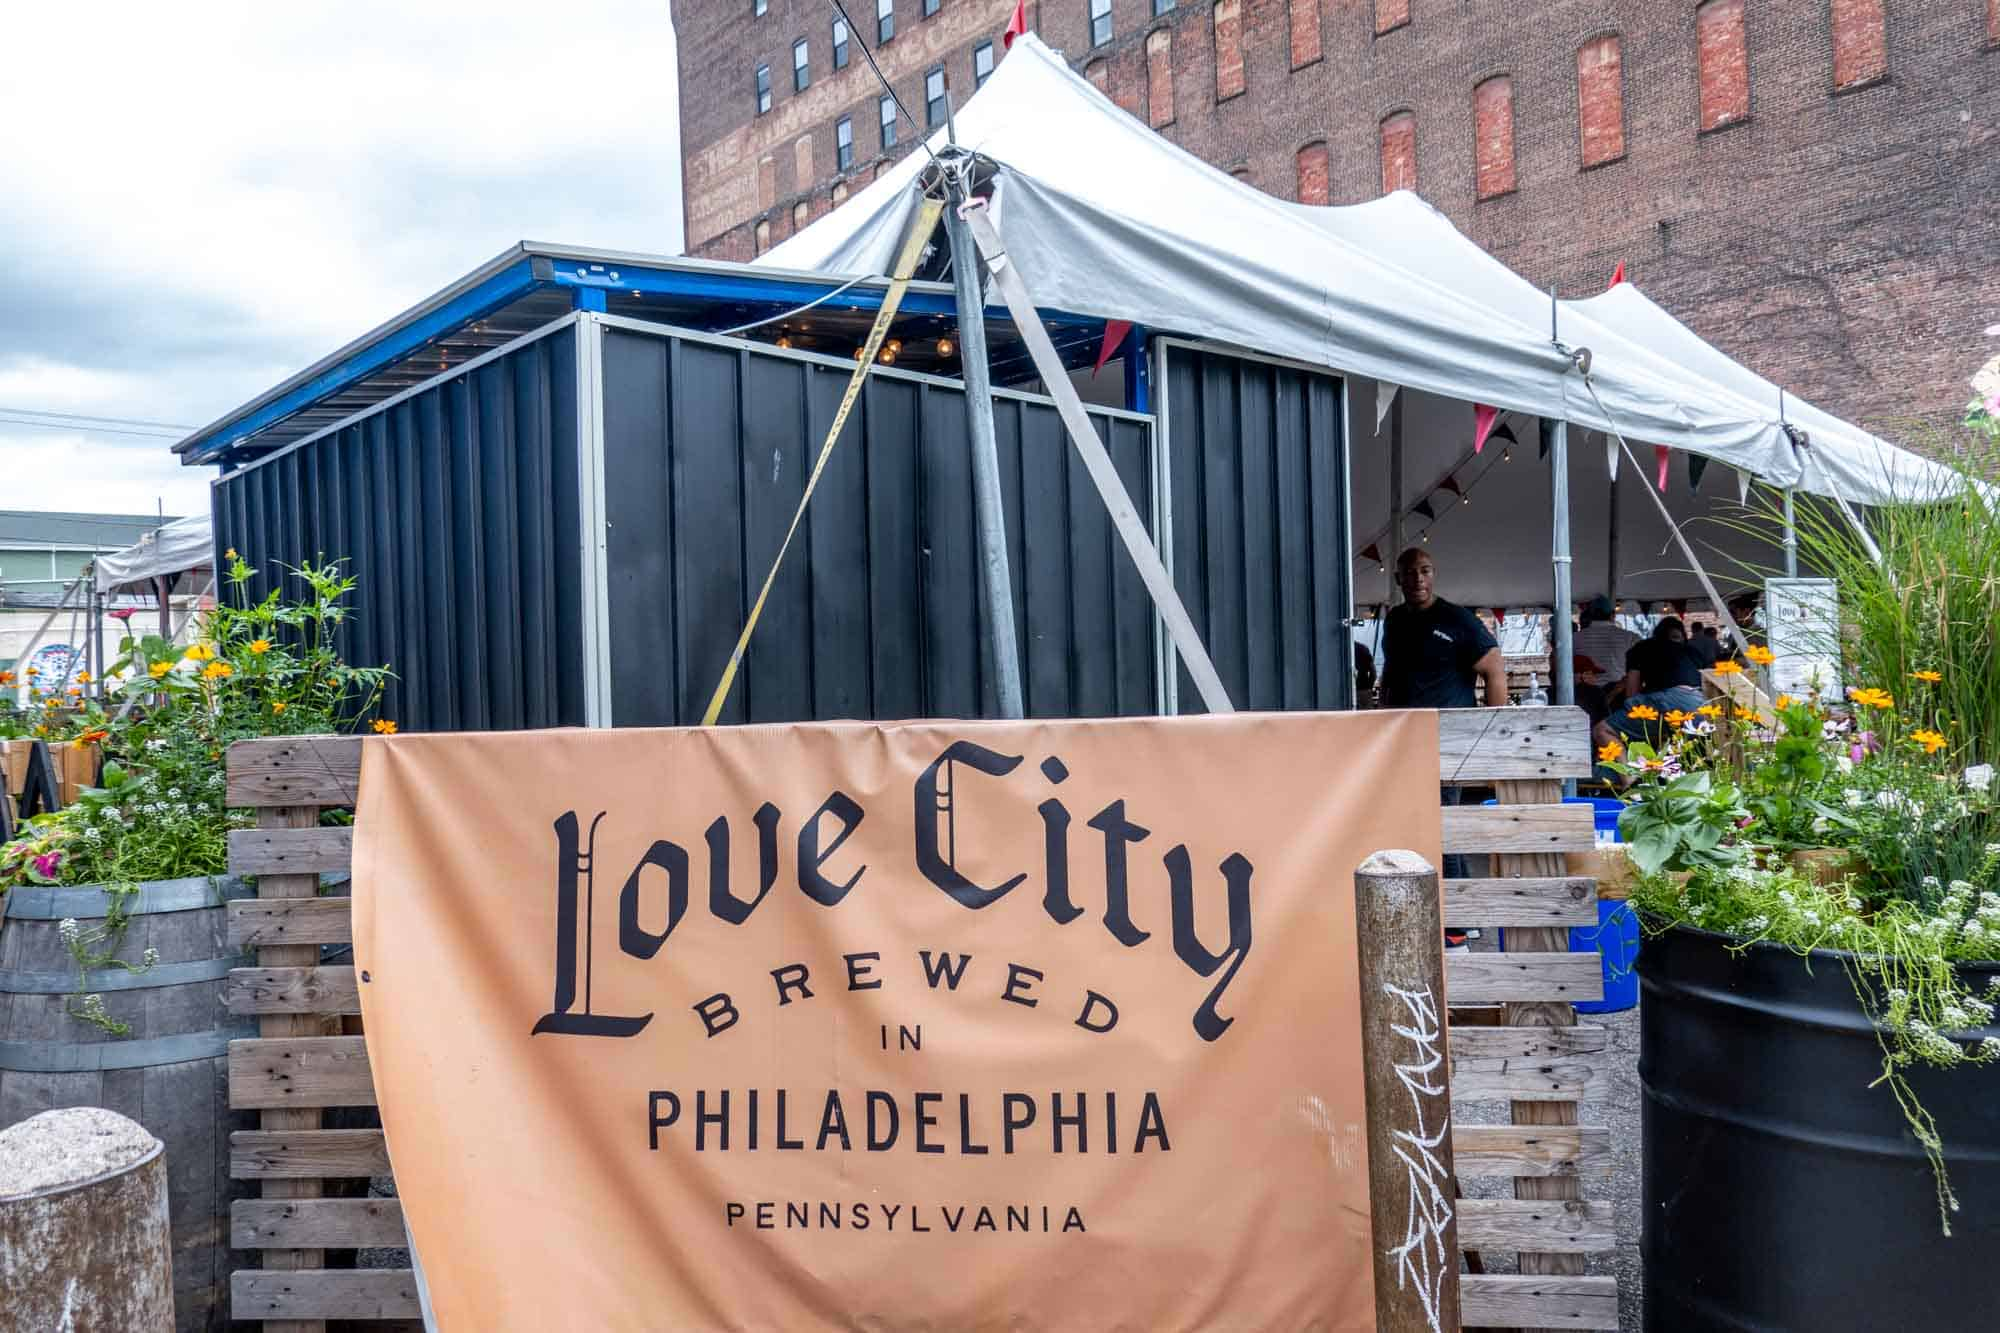 """Sign reading """"Love City Brewed in Philadelphia Pennsylvania"""" in front of garden space"""